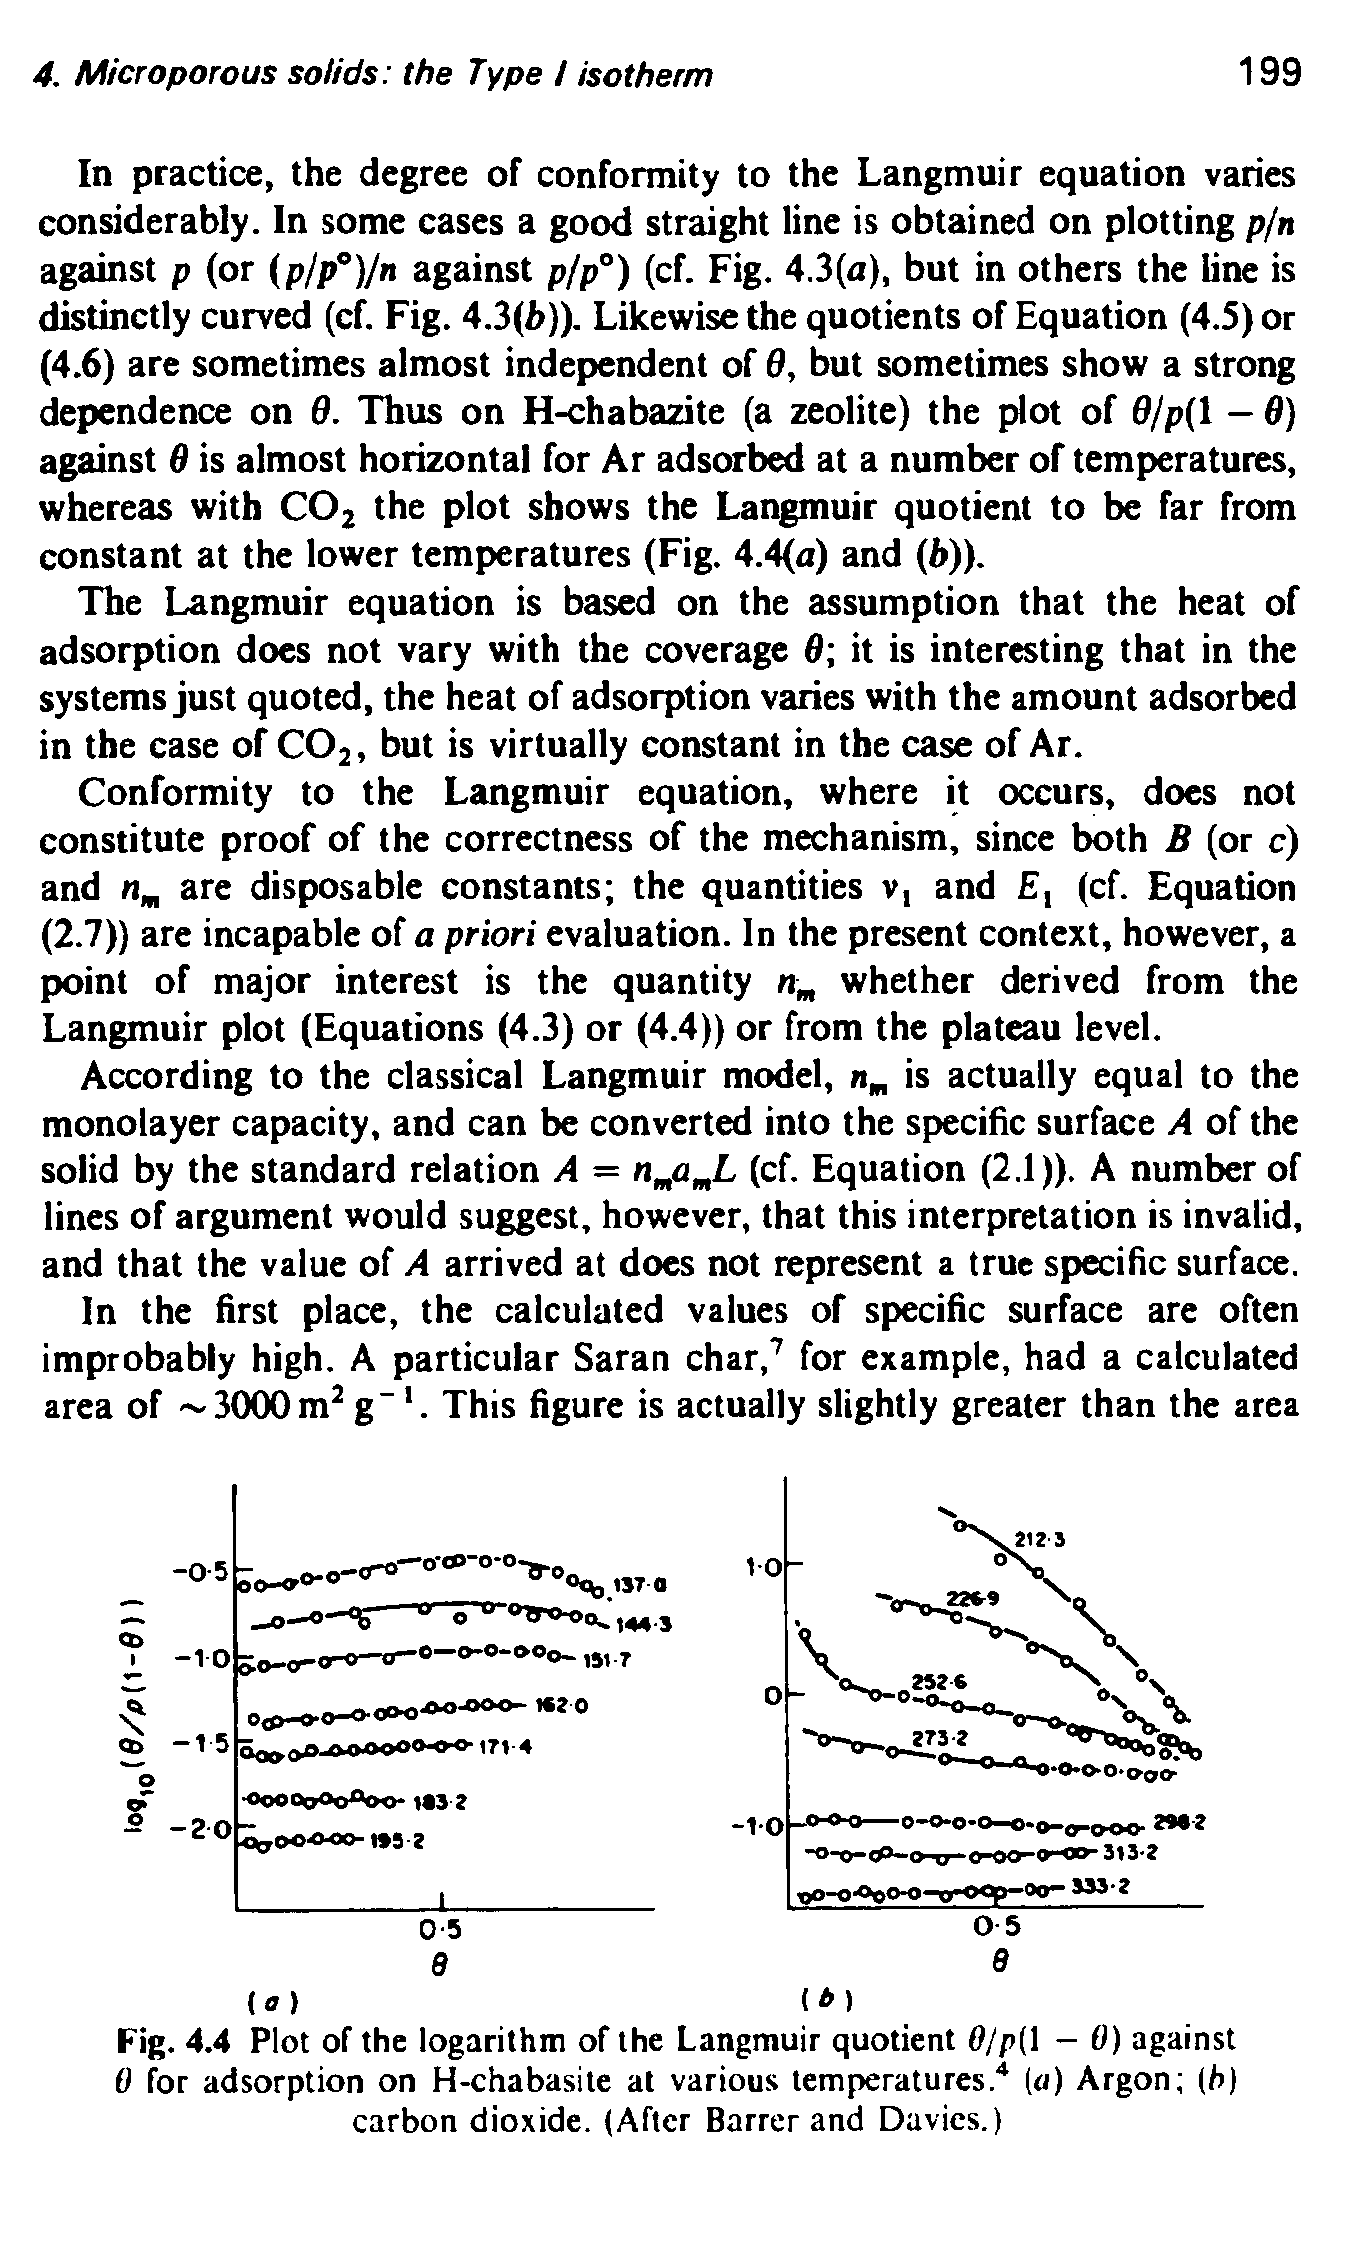 "Fig. 4.4 Plot of the logarithm of the Langmuir quotient 0/p( - 0) against 0 for adsorption on H-chabasite at various temperatures."" (a) Argon (h) carbon dioxide. (After Barrer and Davies.)..."